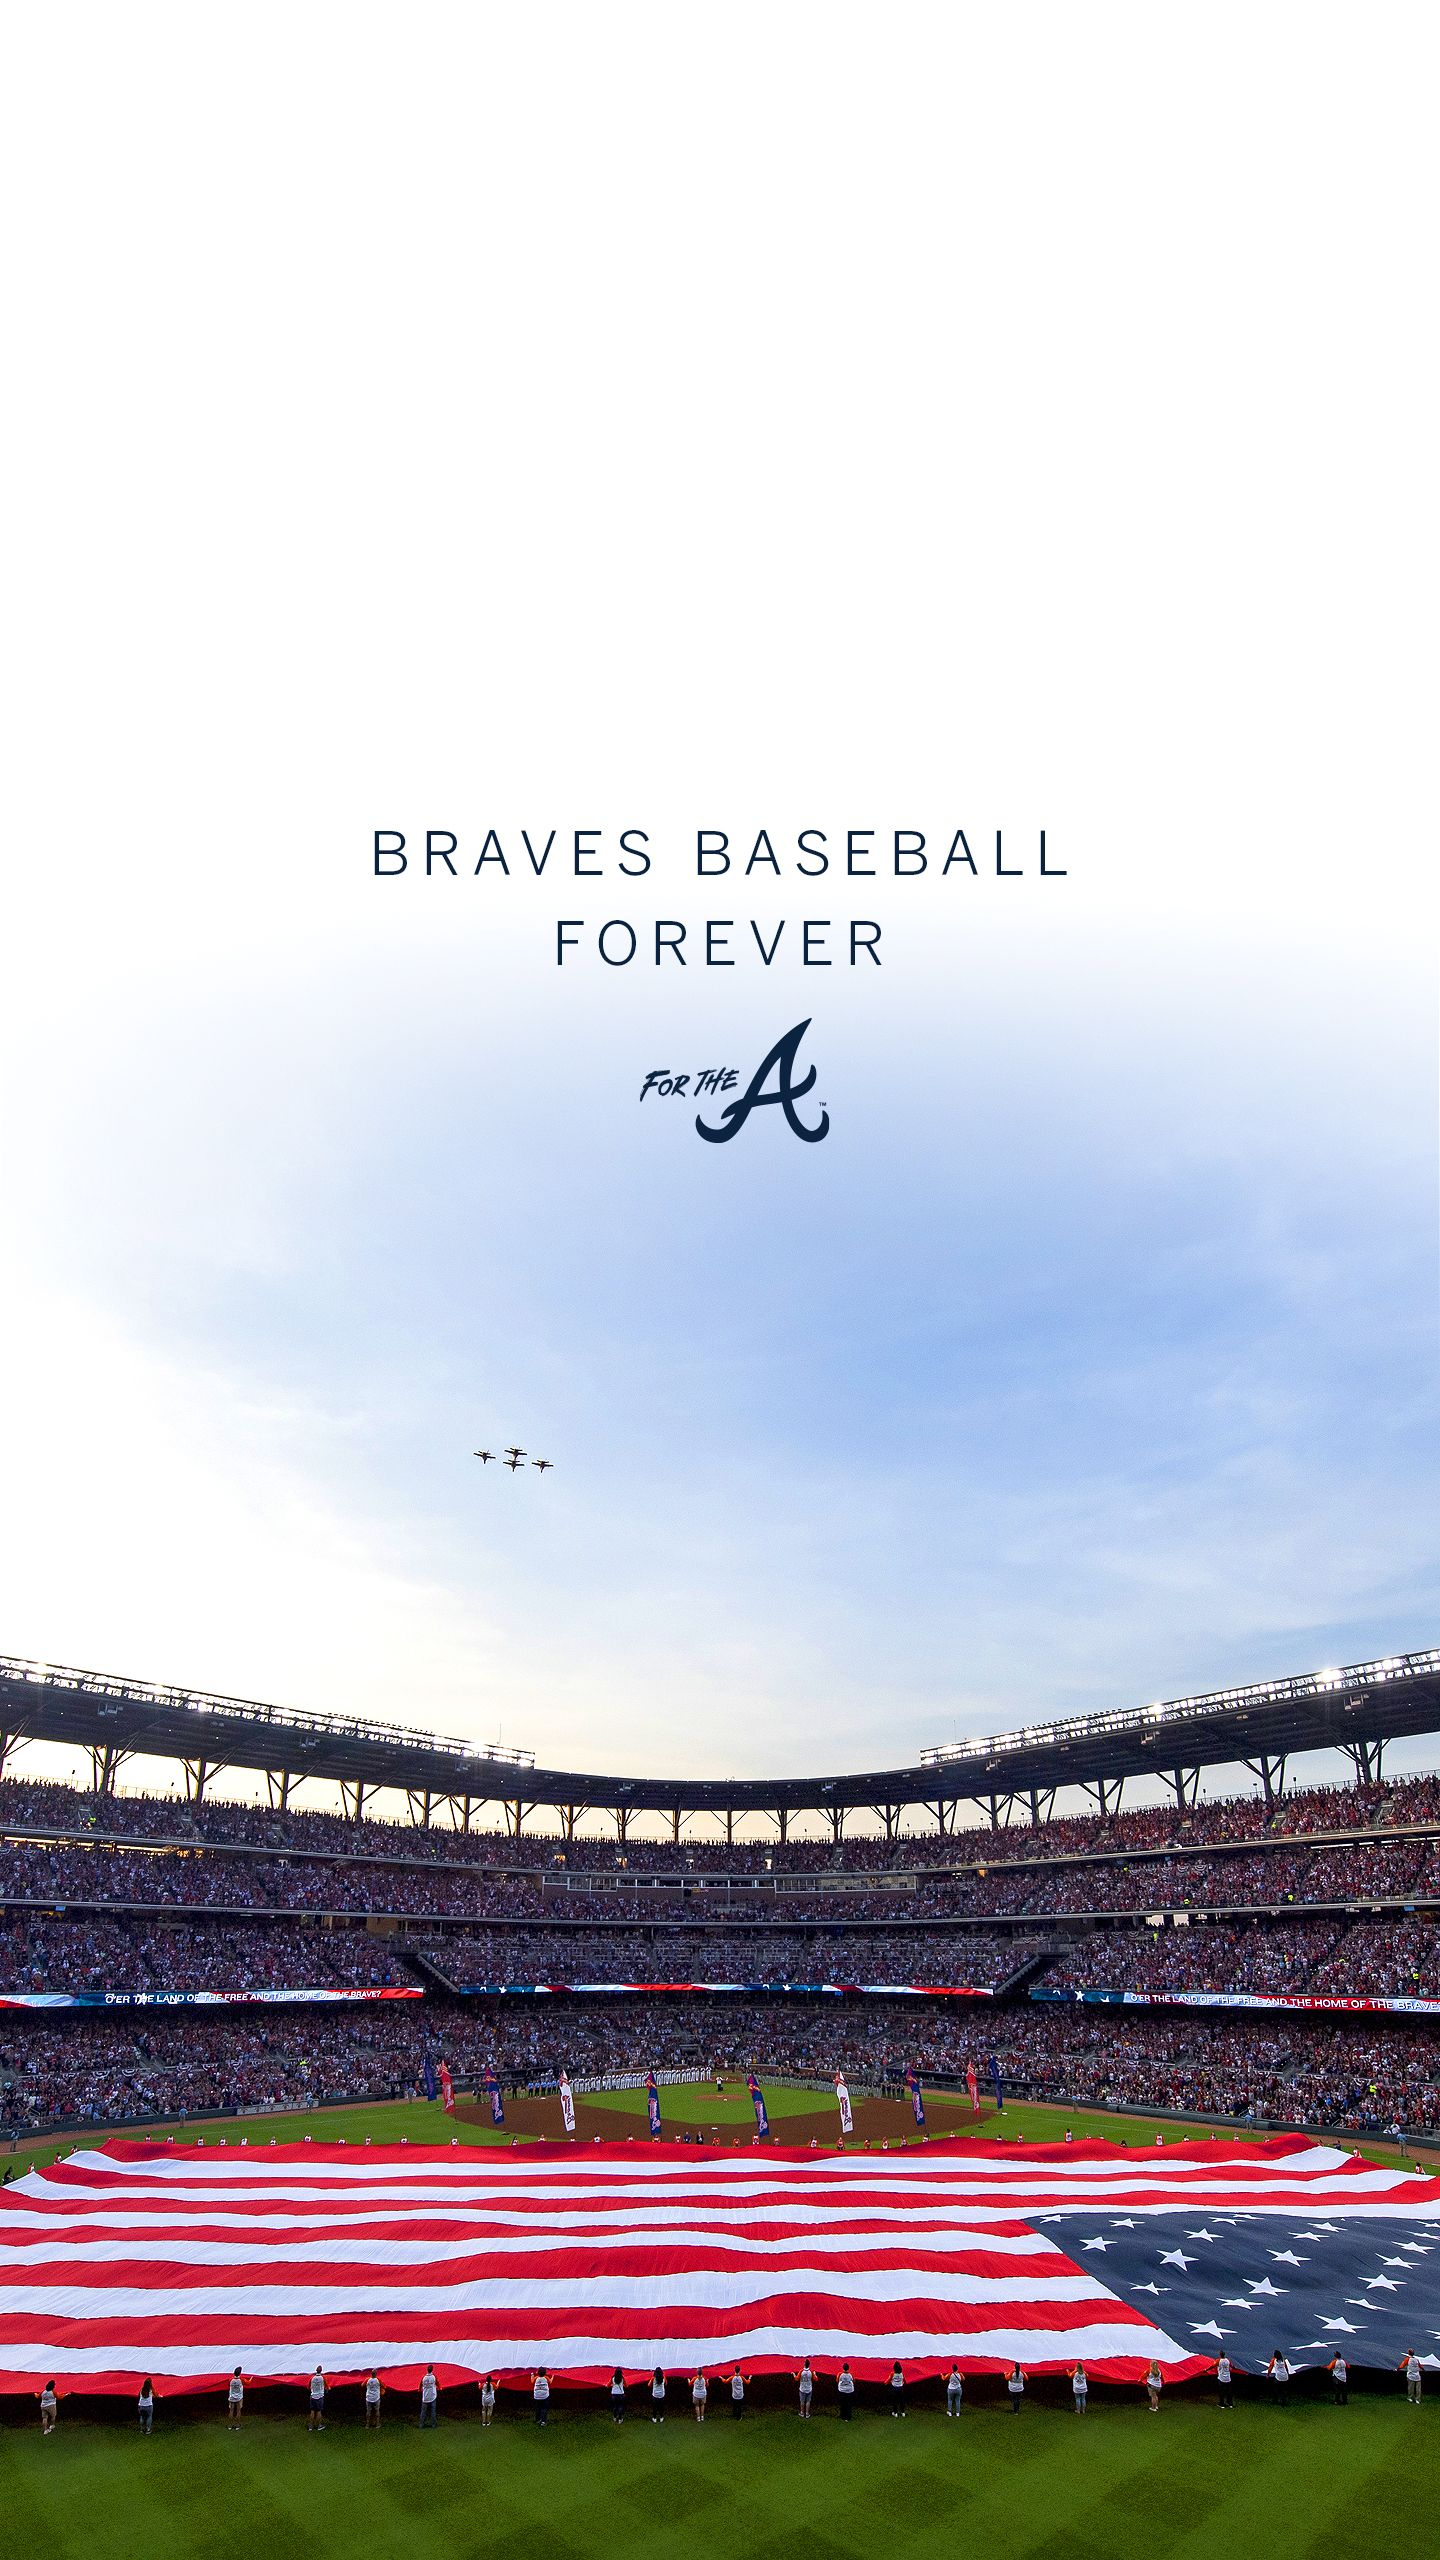 Braves Baseball Forever In 2020 Atlanta Braves Wallpaper Braves Baseball Braves